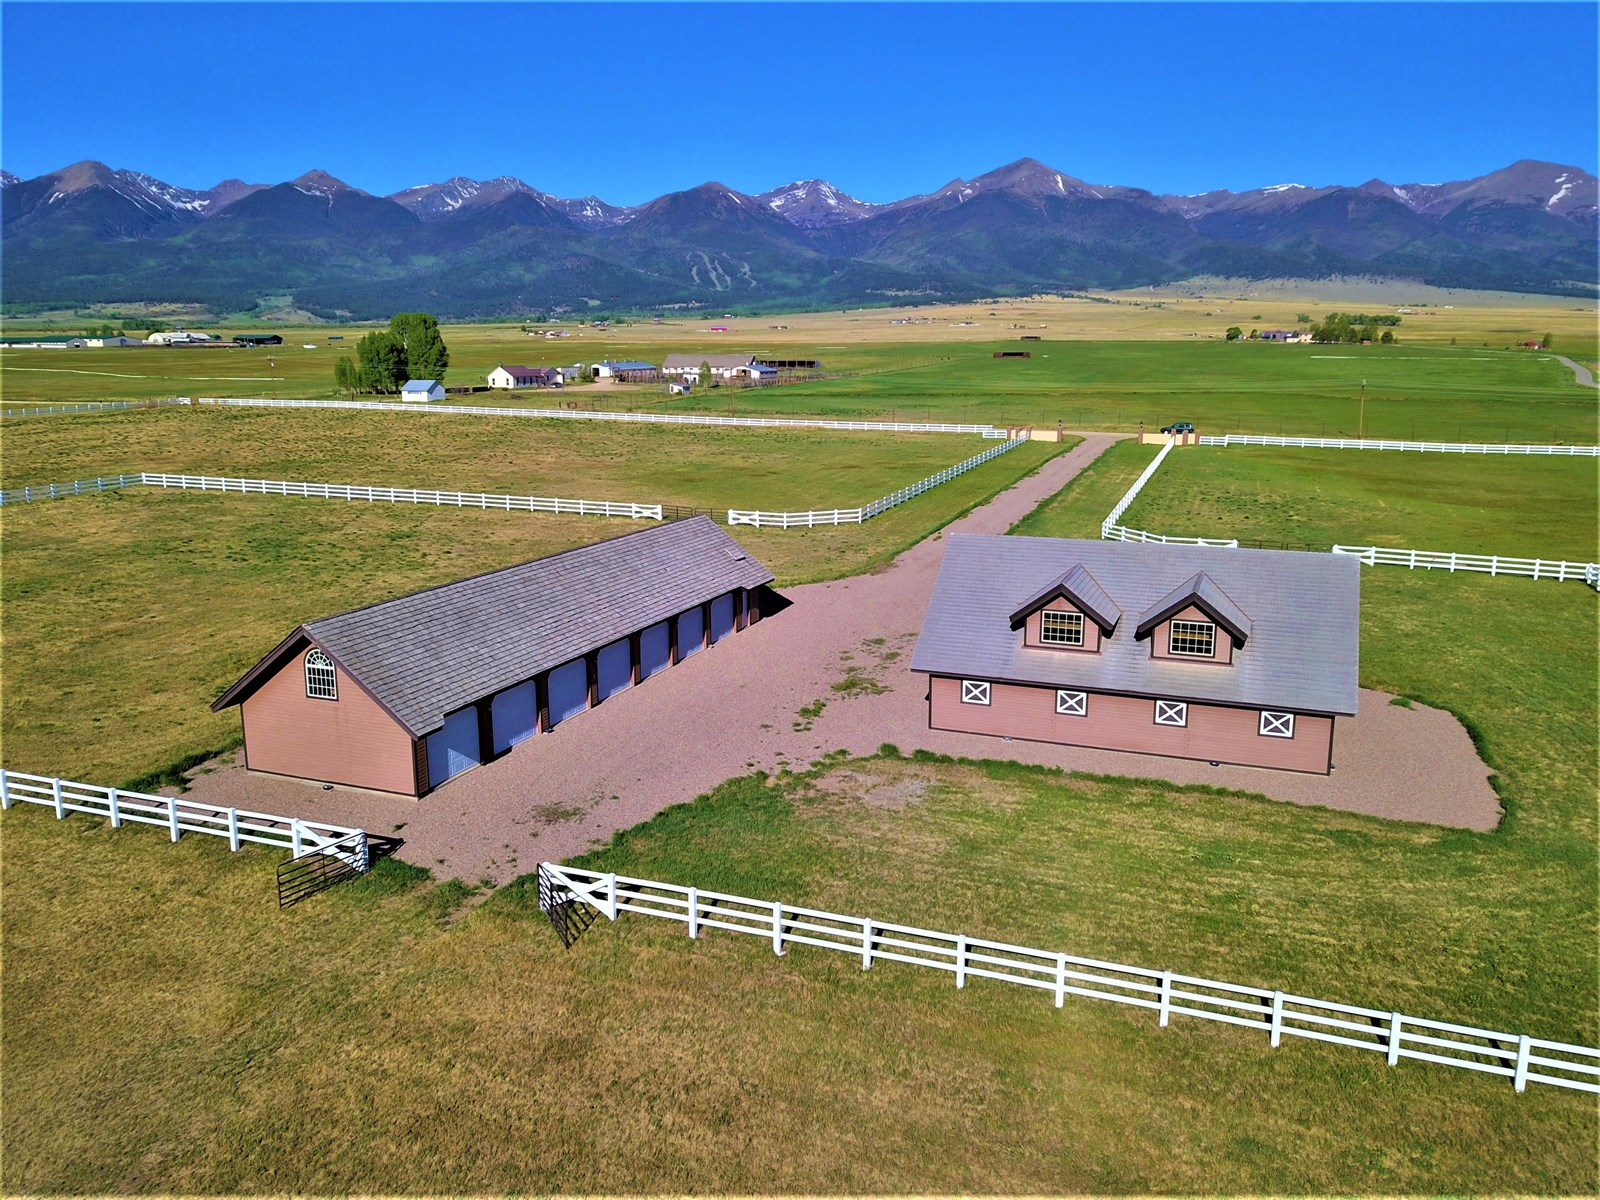 Stunningly Beautiful Horse Ranch in Westcliffe, Colorado